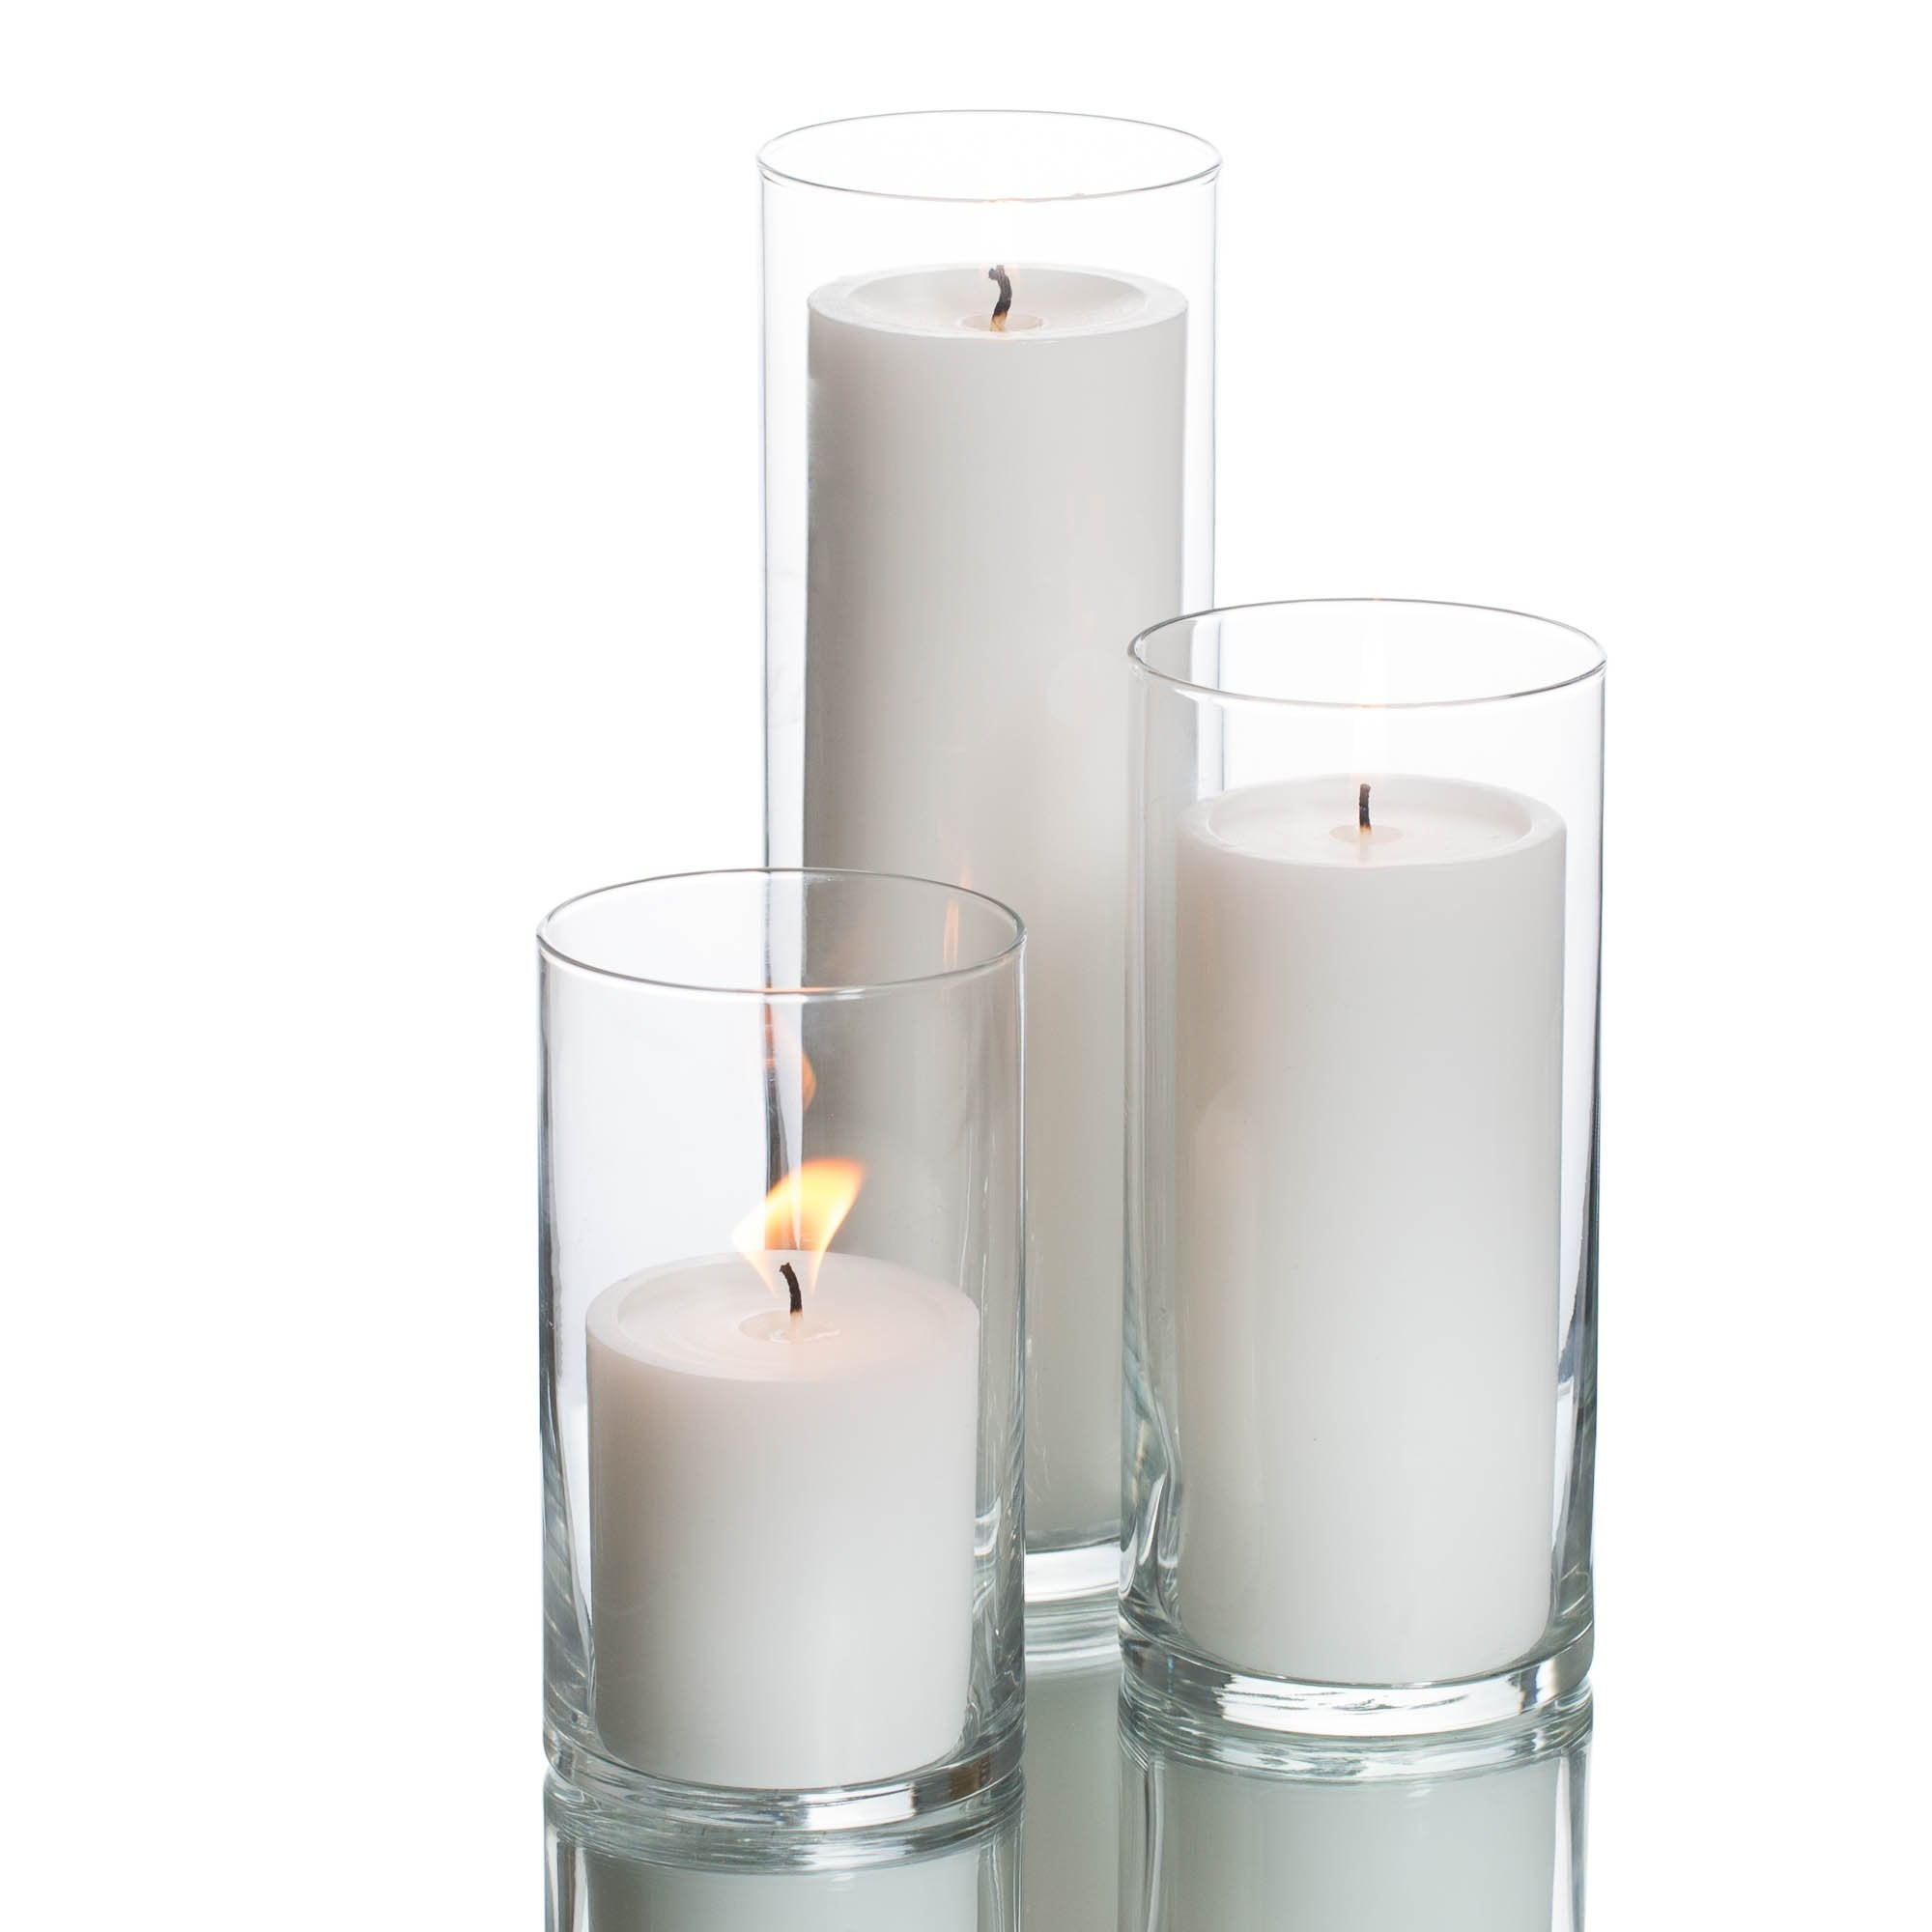 Pillar Candle & Holder Sets